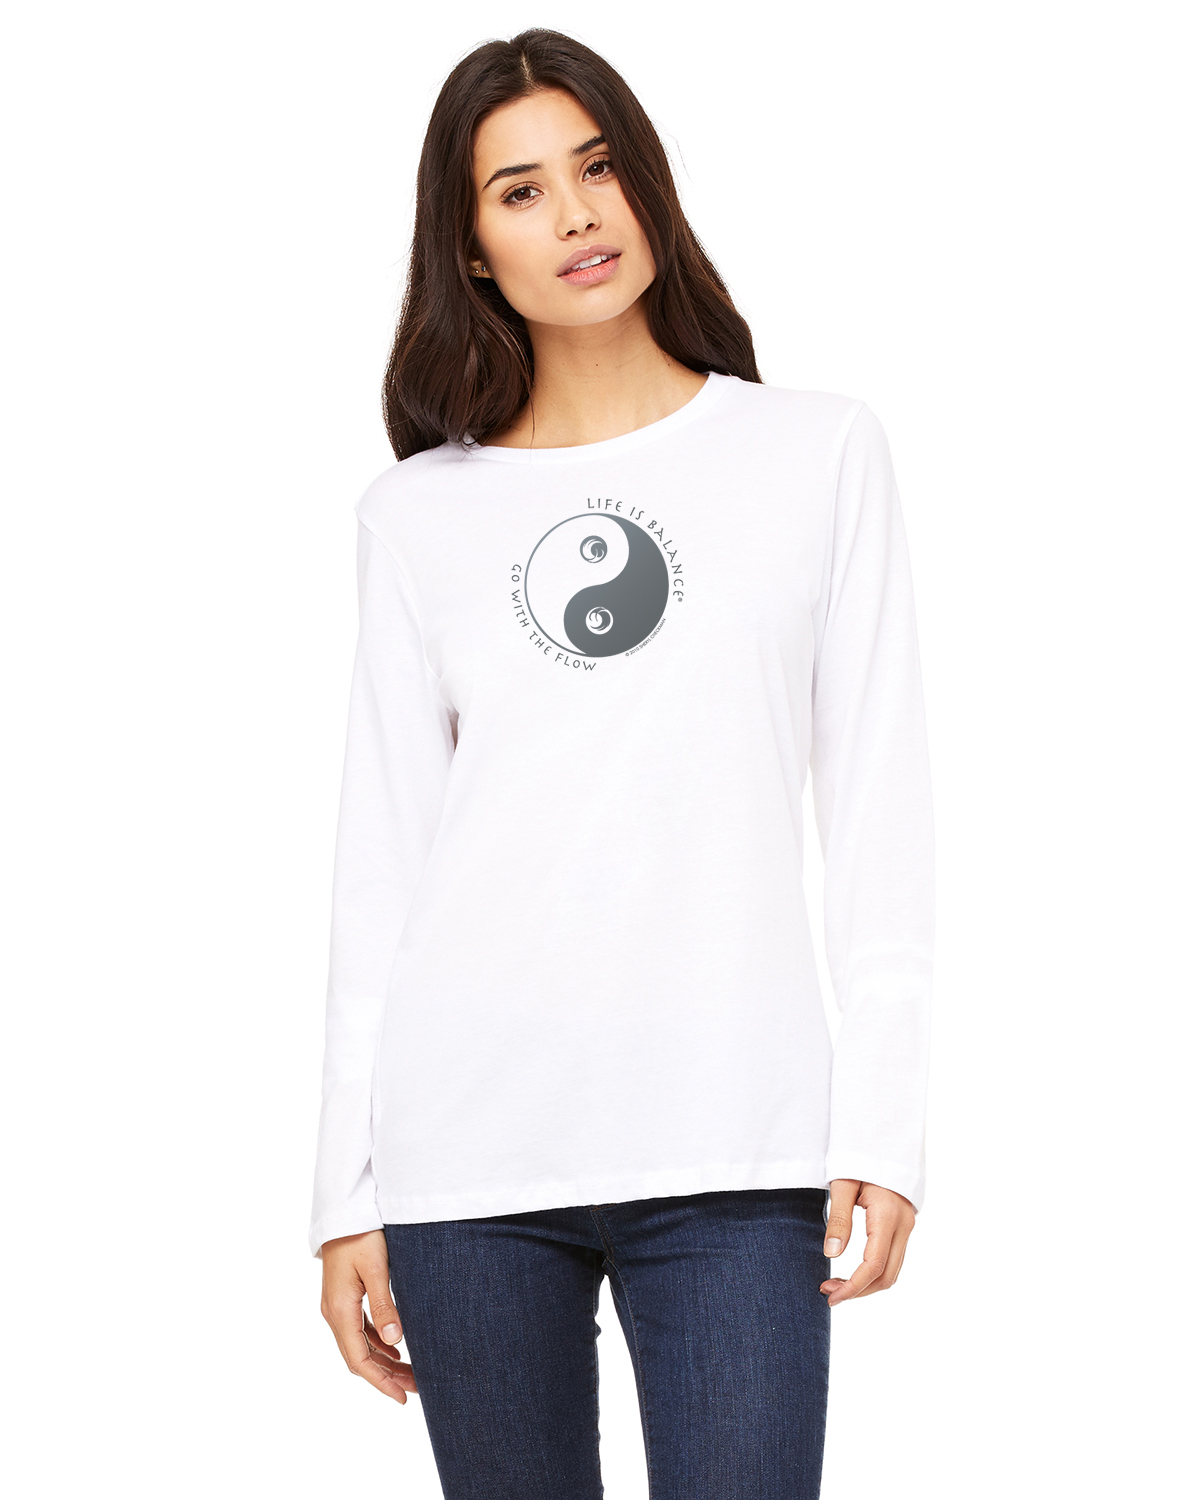 Women's long sleeve crew neck inspirational ocean lover t-shirt (white)